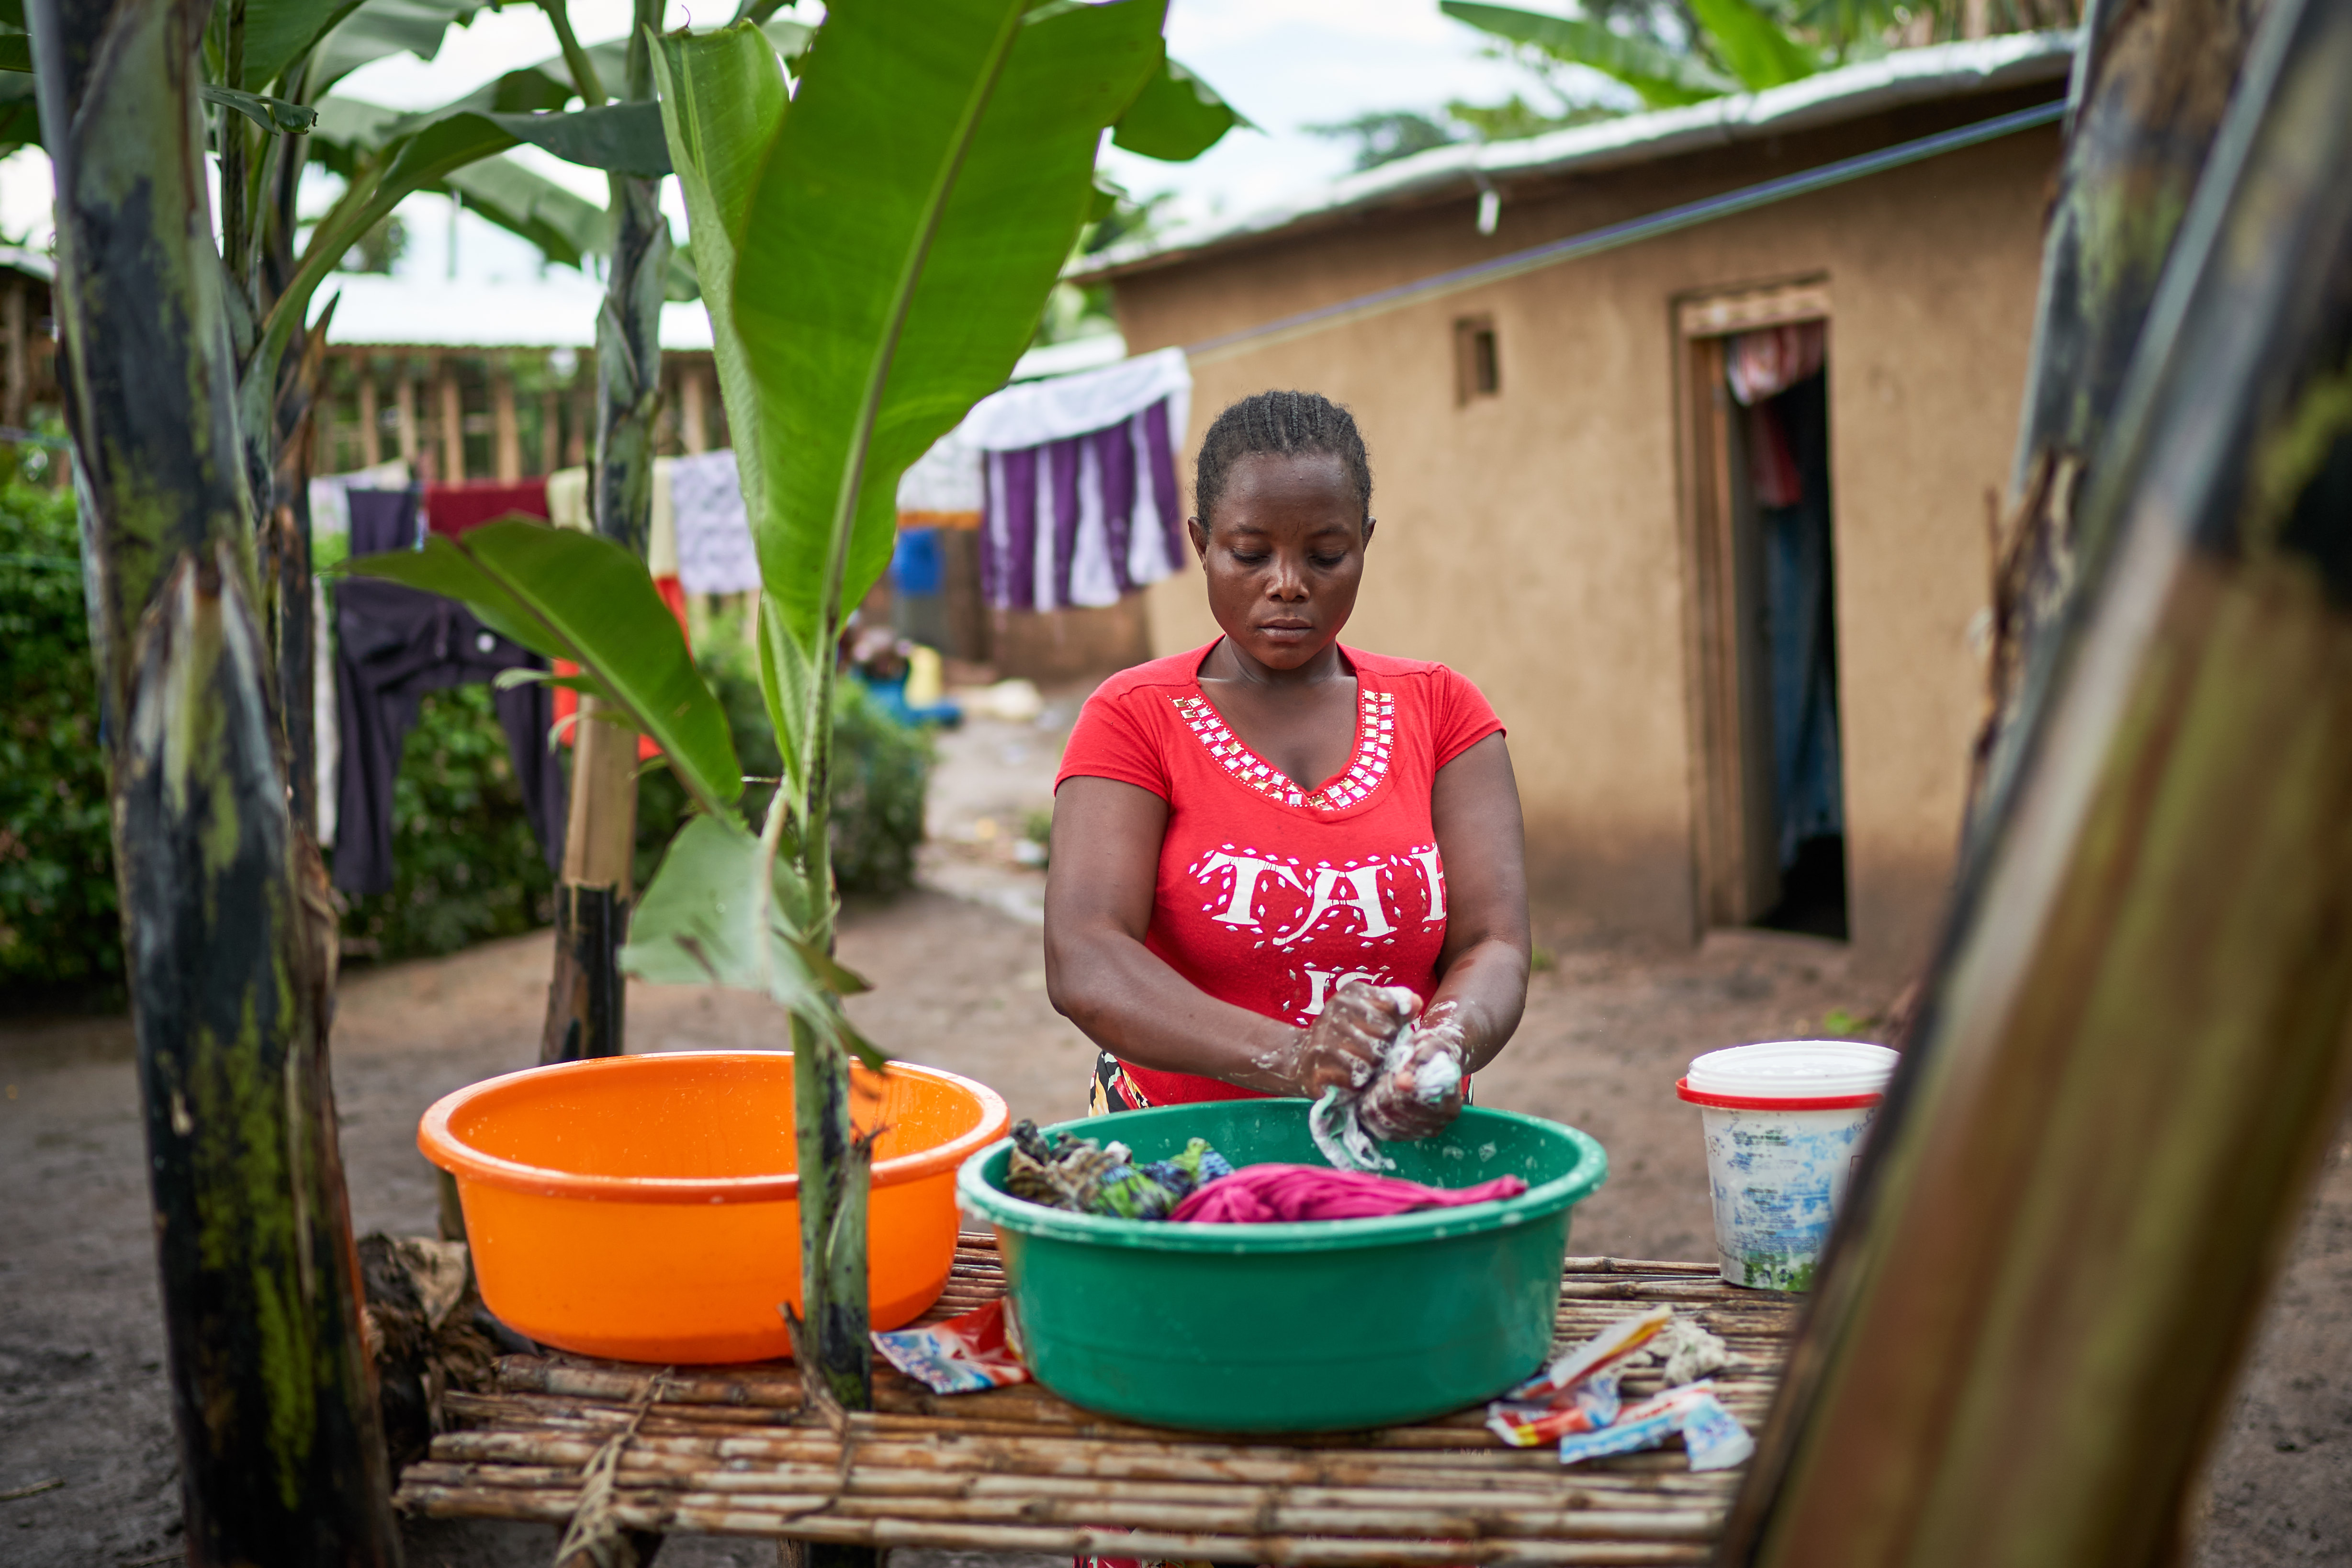 Janet washes clothes outside her home in Kyangwali refugee settlement in Uganda